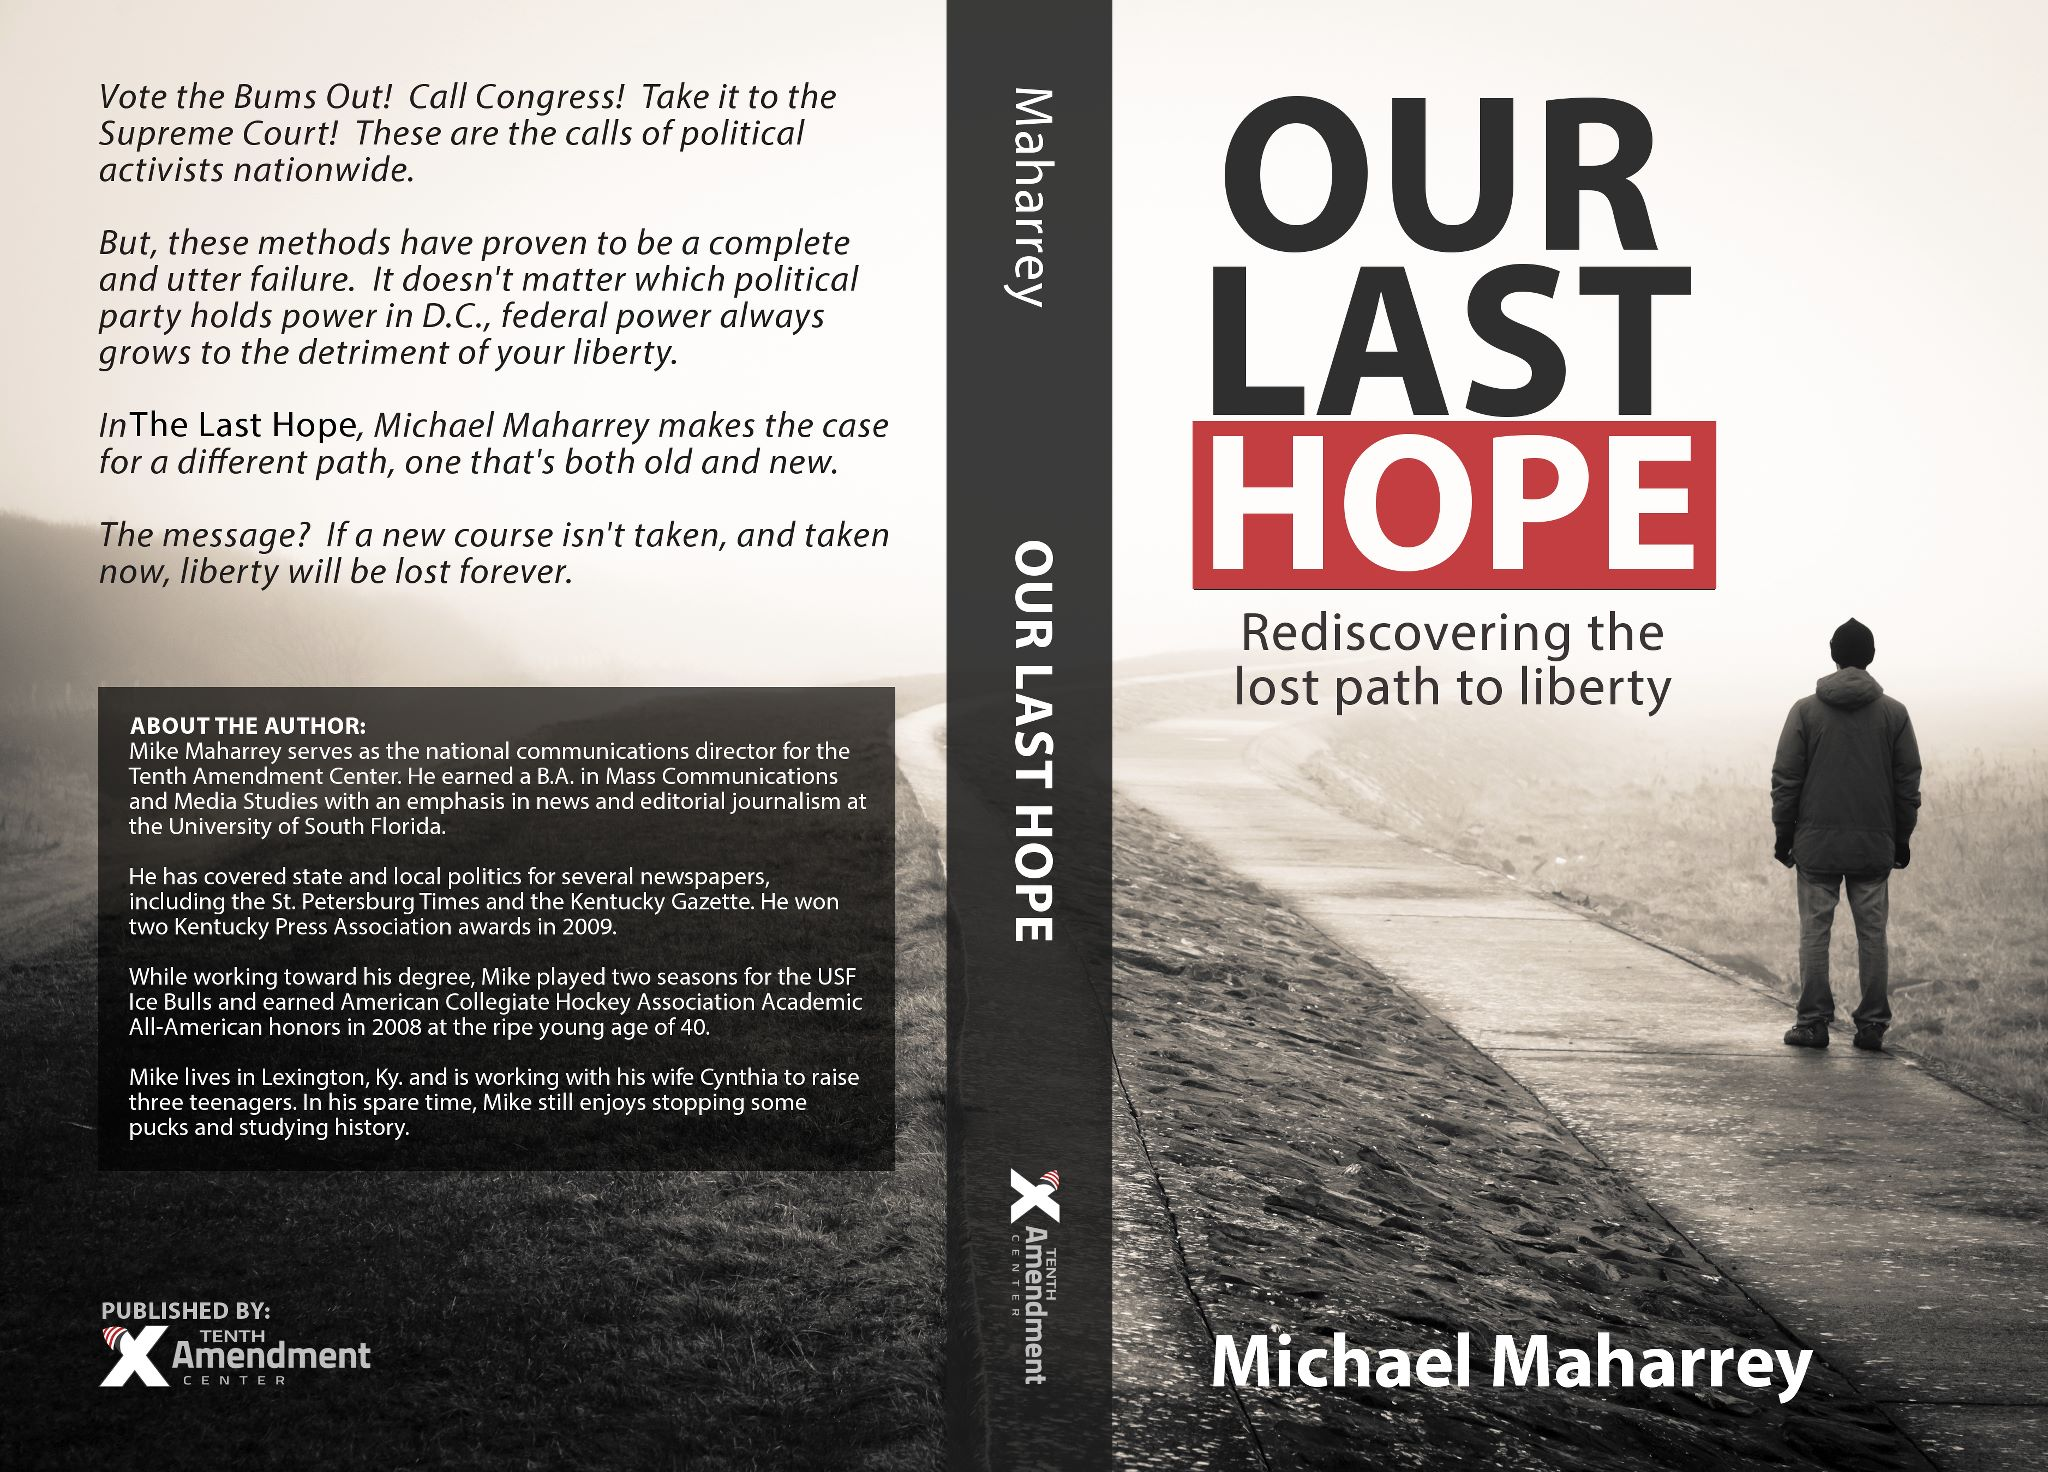 Perhaps I Got It Right: A Nice Endorsement for 'Our Last Hope'